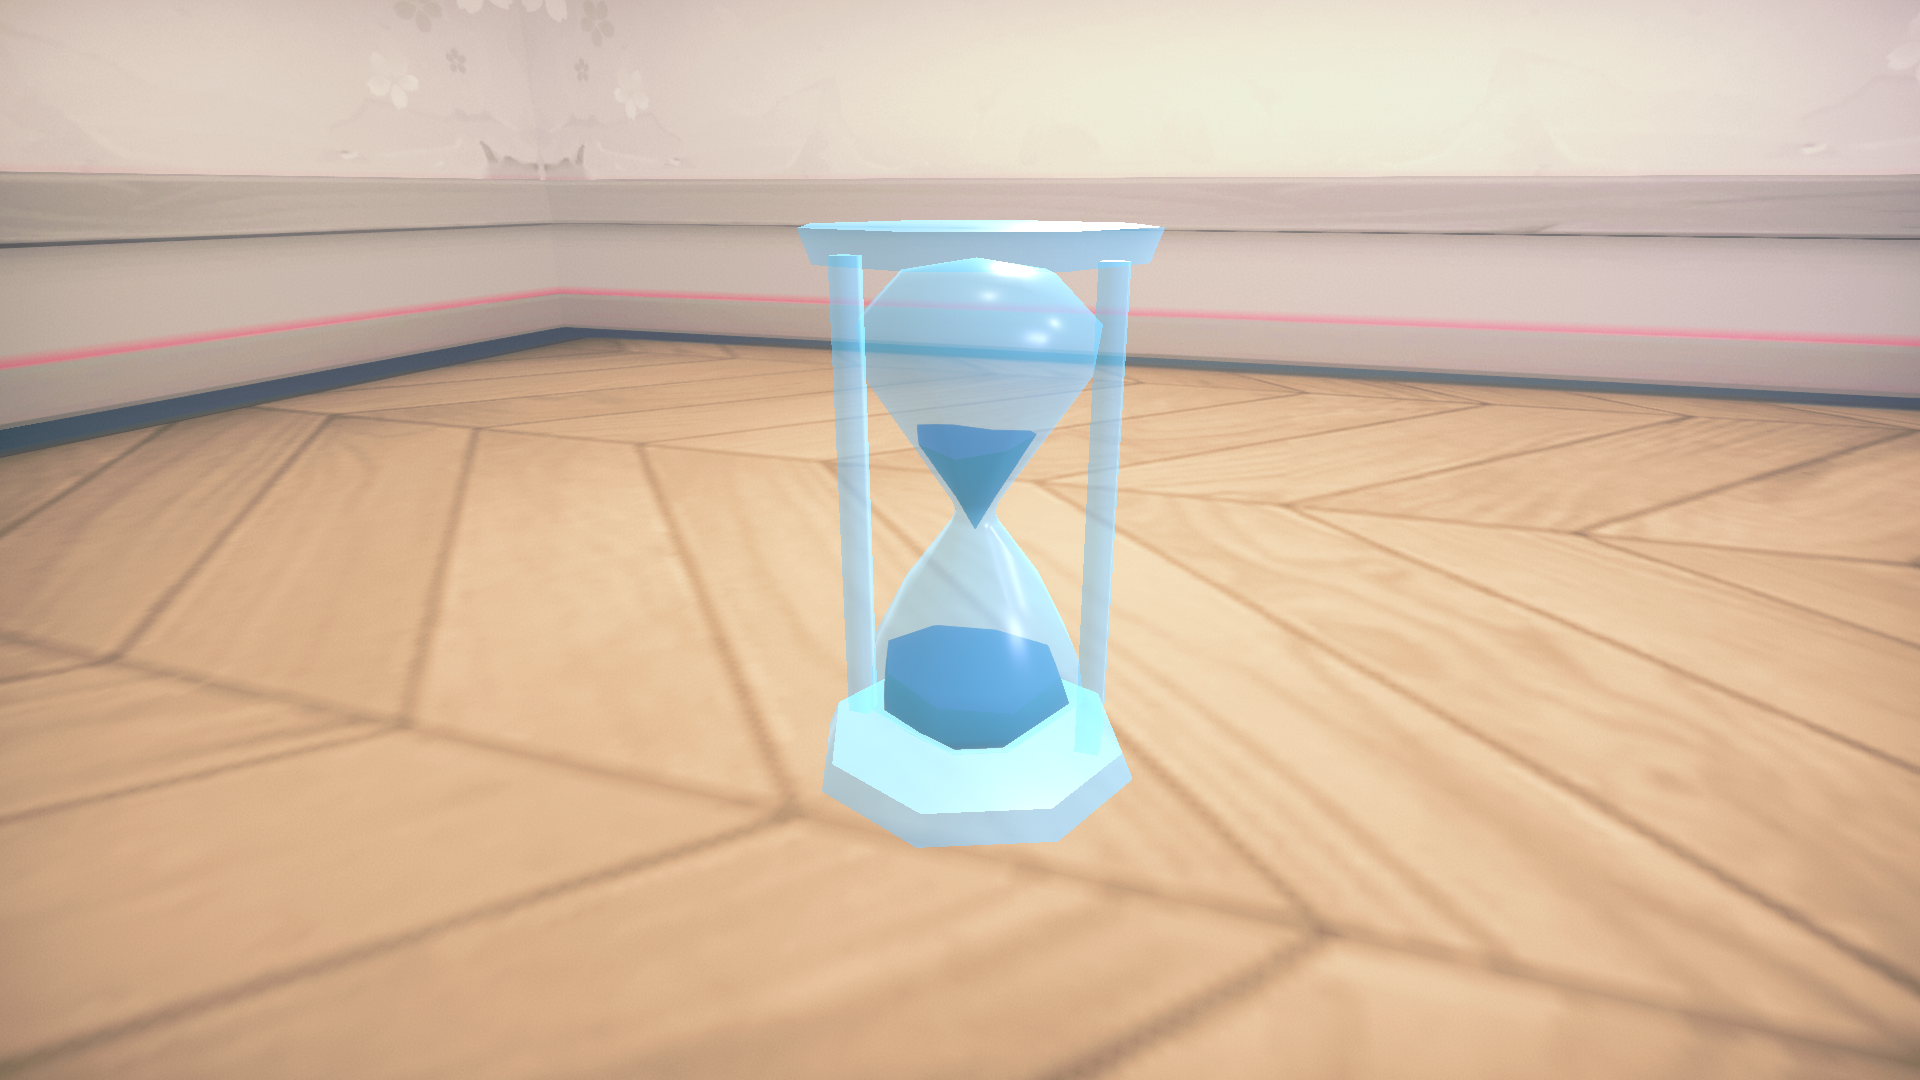 Crystal Hourglass | My Time at Portia Wiki | FANDOM powered